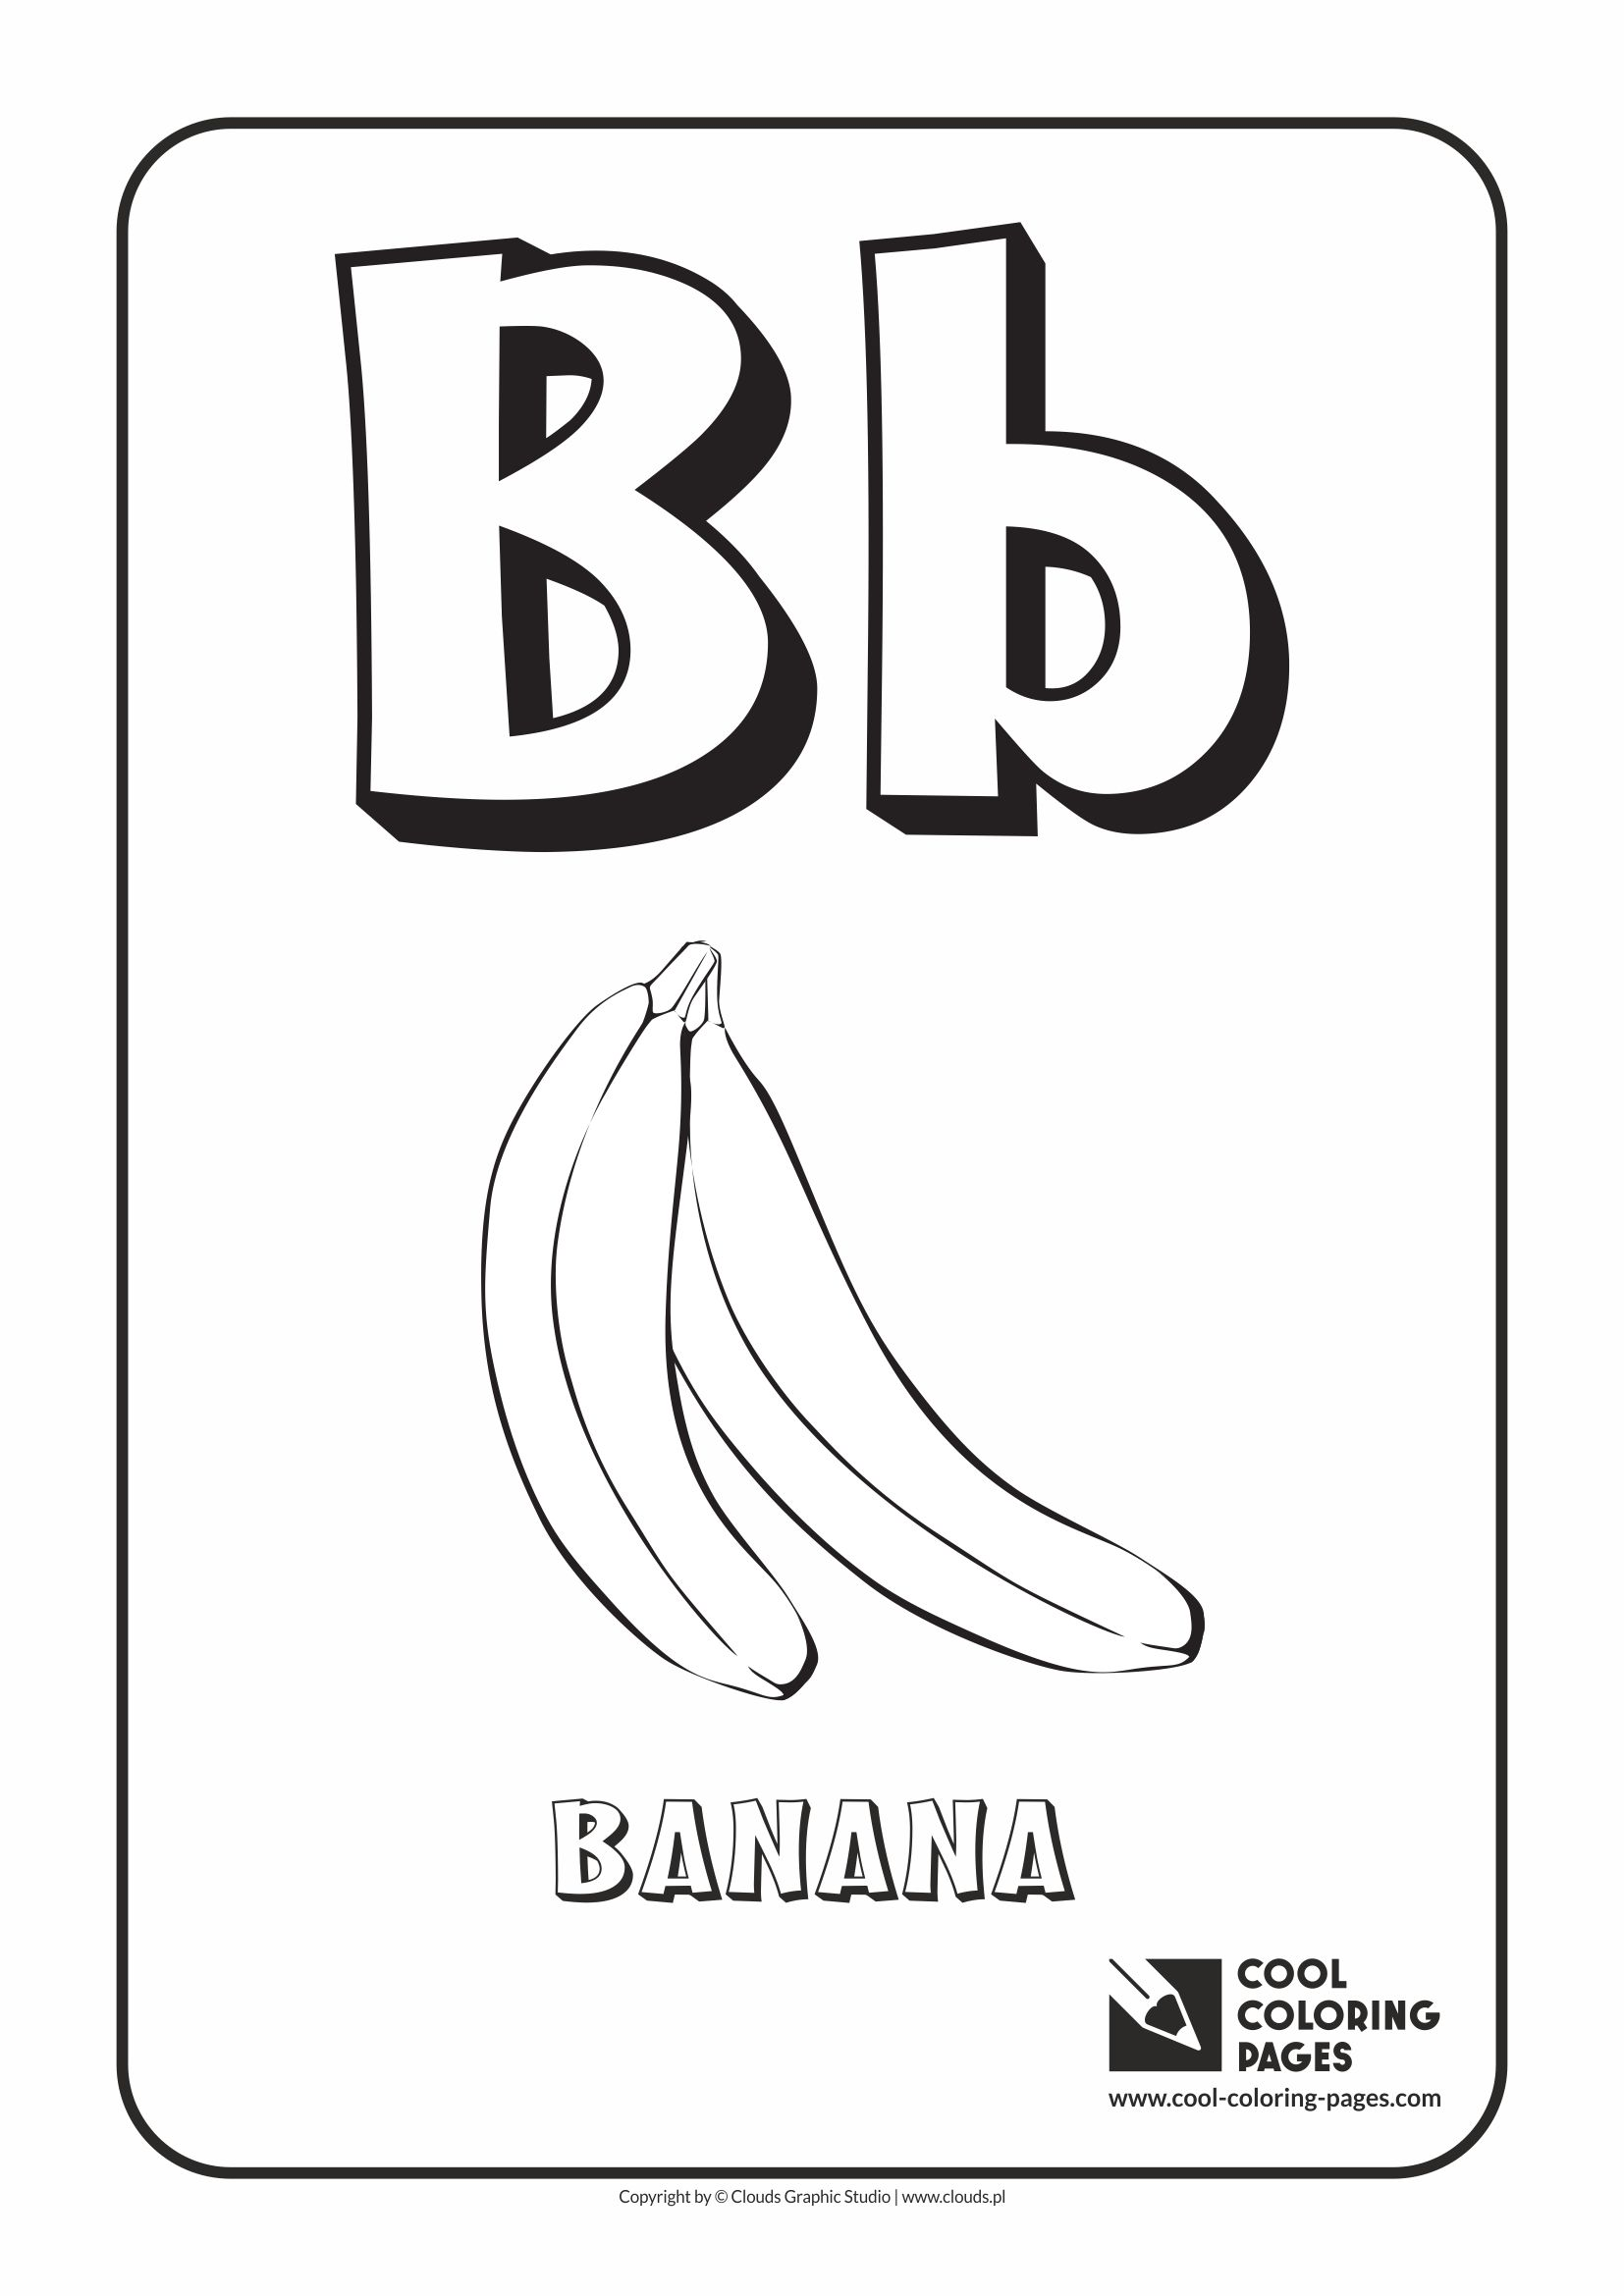 Pre k coloring pages alphabet - Cool Coloring Pages Alphabet Letter B Coloring Page With Letter B